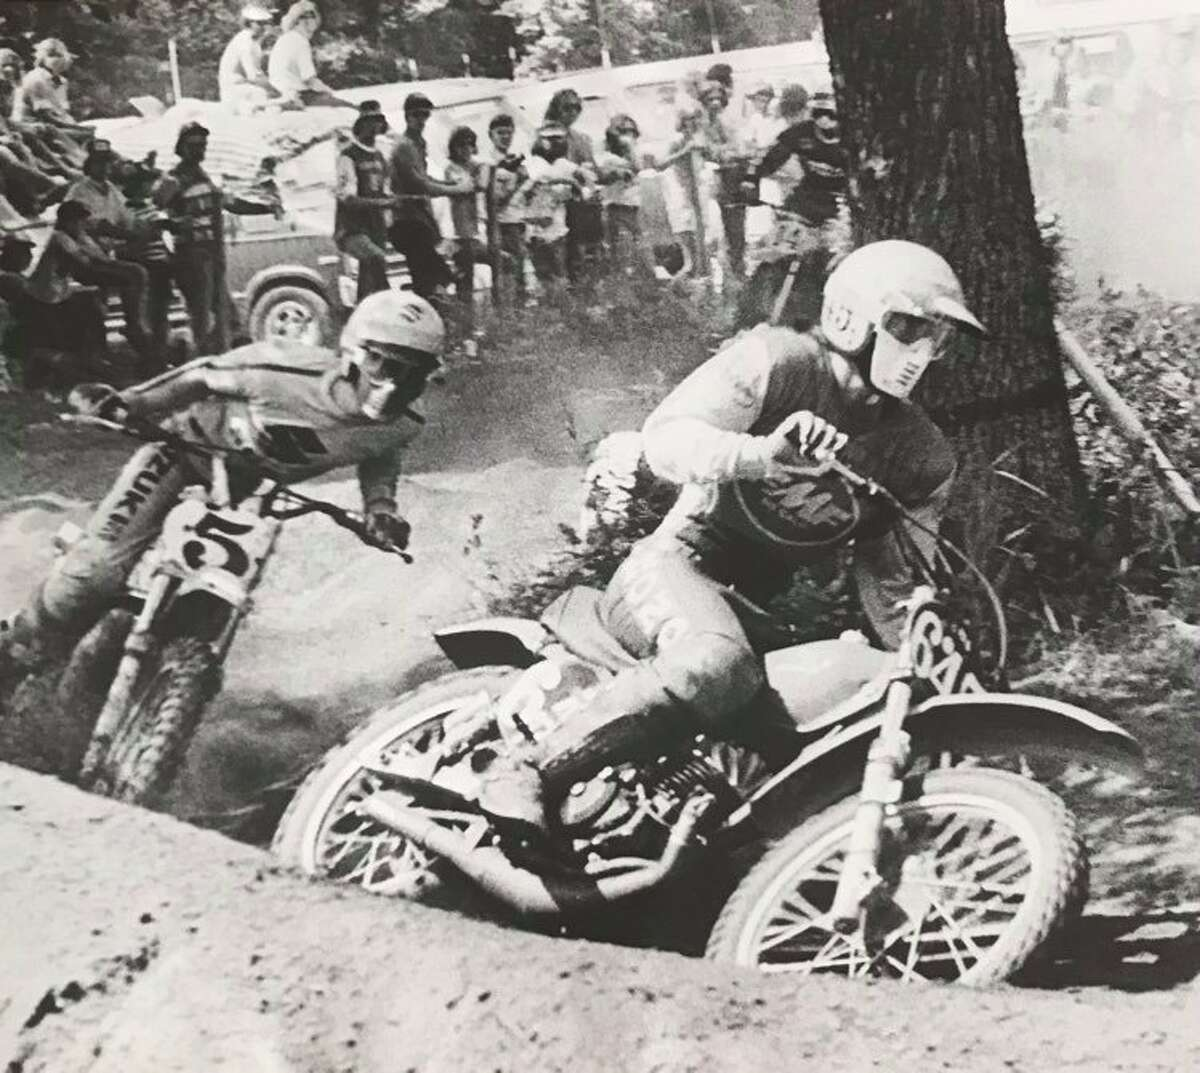 Motocross riders round a curve at the 125cc national event at the Polka Dots Motorcycle Club track. June 1976